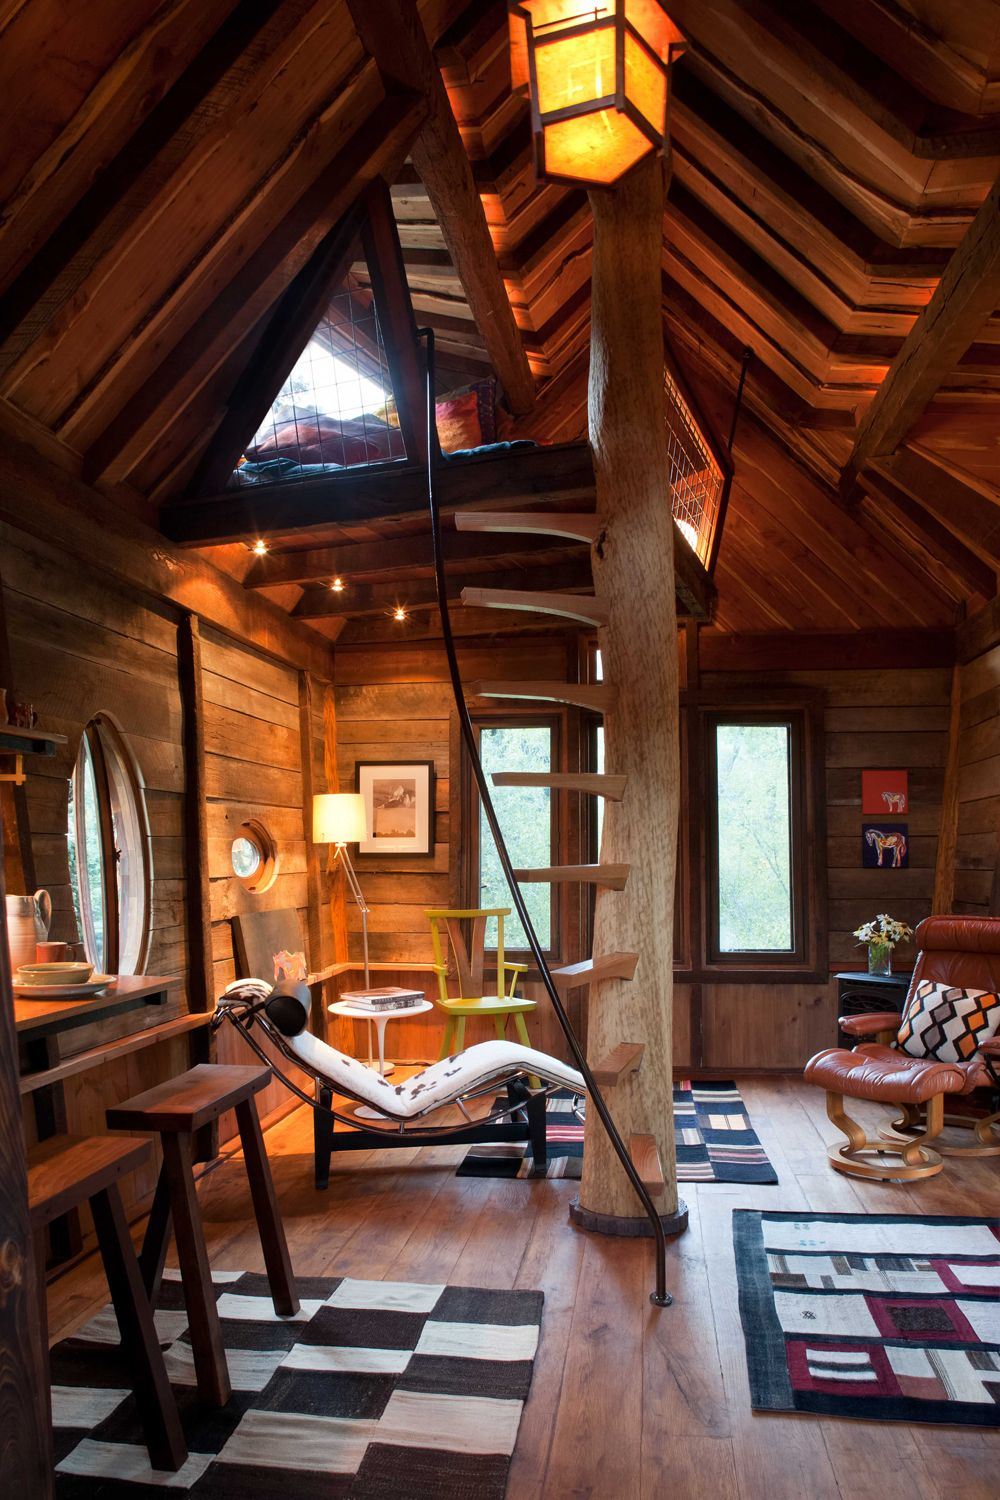 Whimsical Interior Design Whimsical Treetop Sanctuary On Crystal River  Tree House Interior